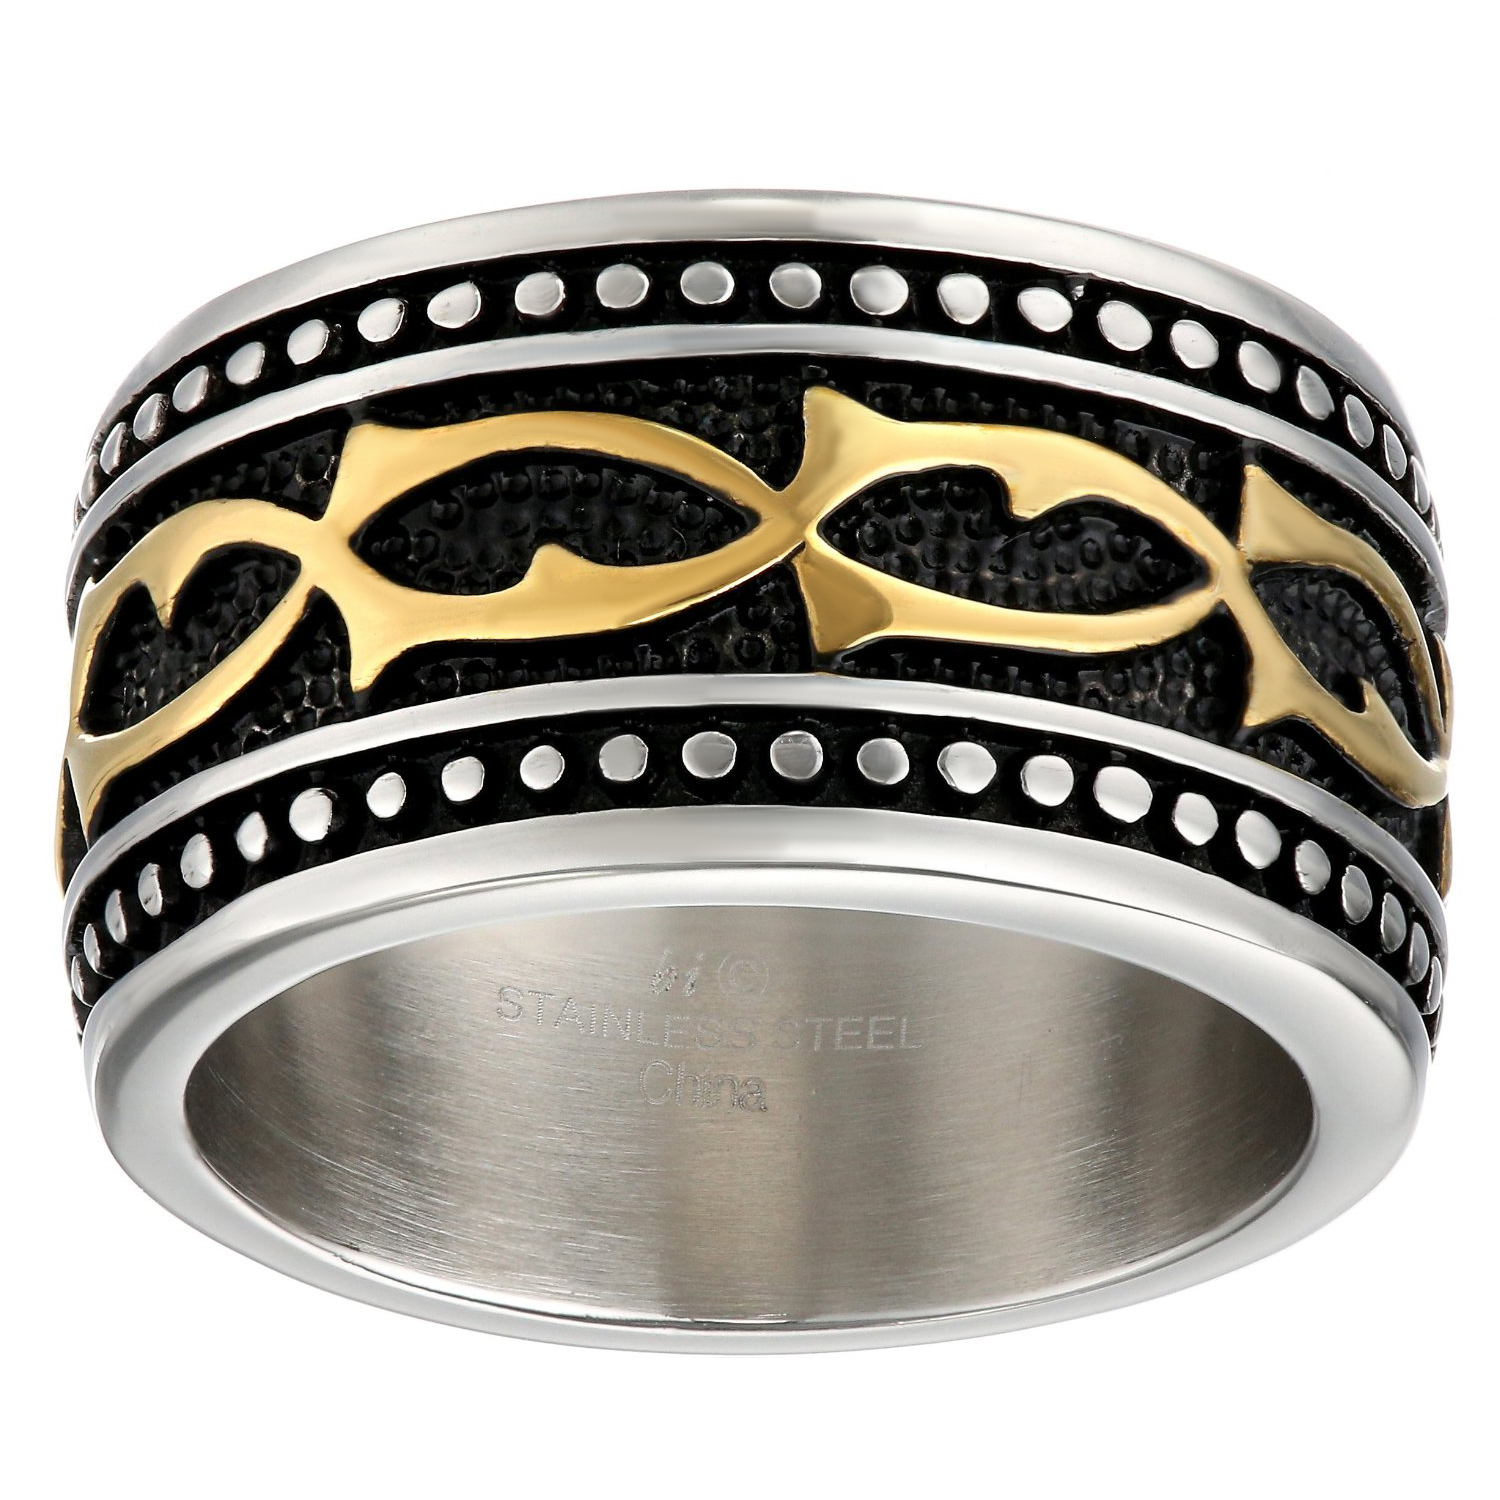 Stainless Steel Ring Gold Ion Plating